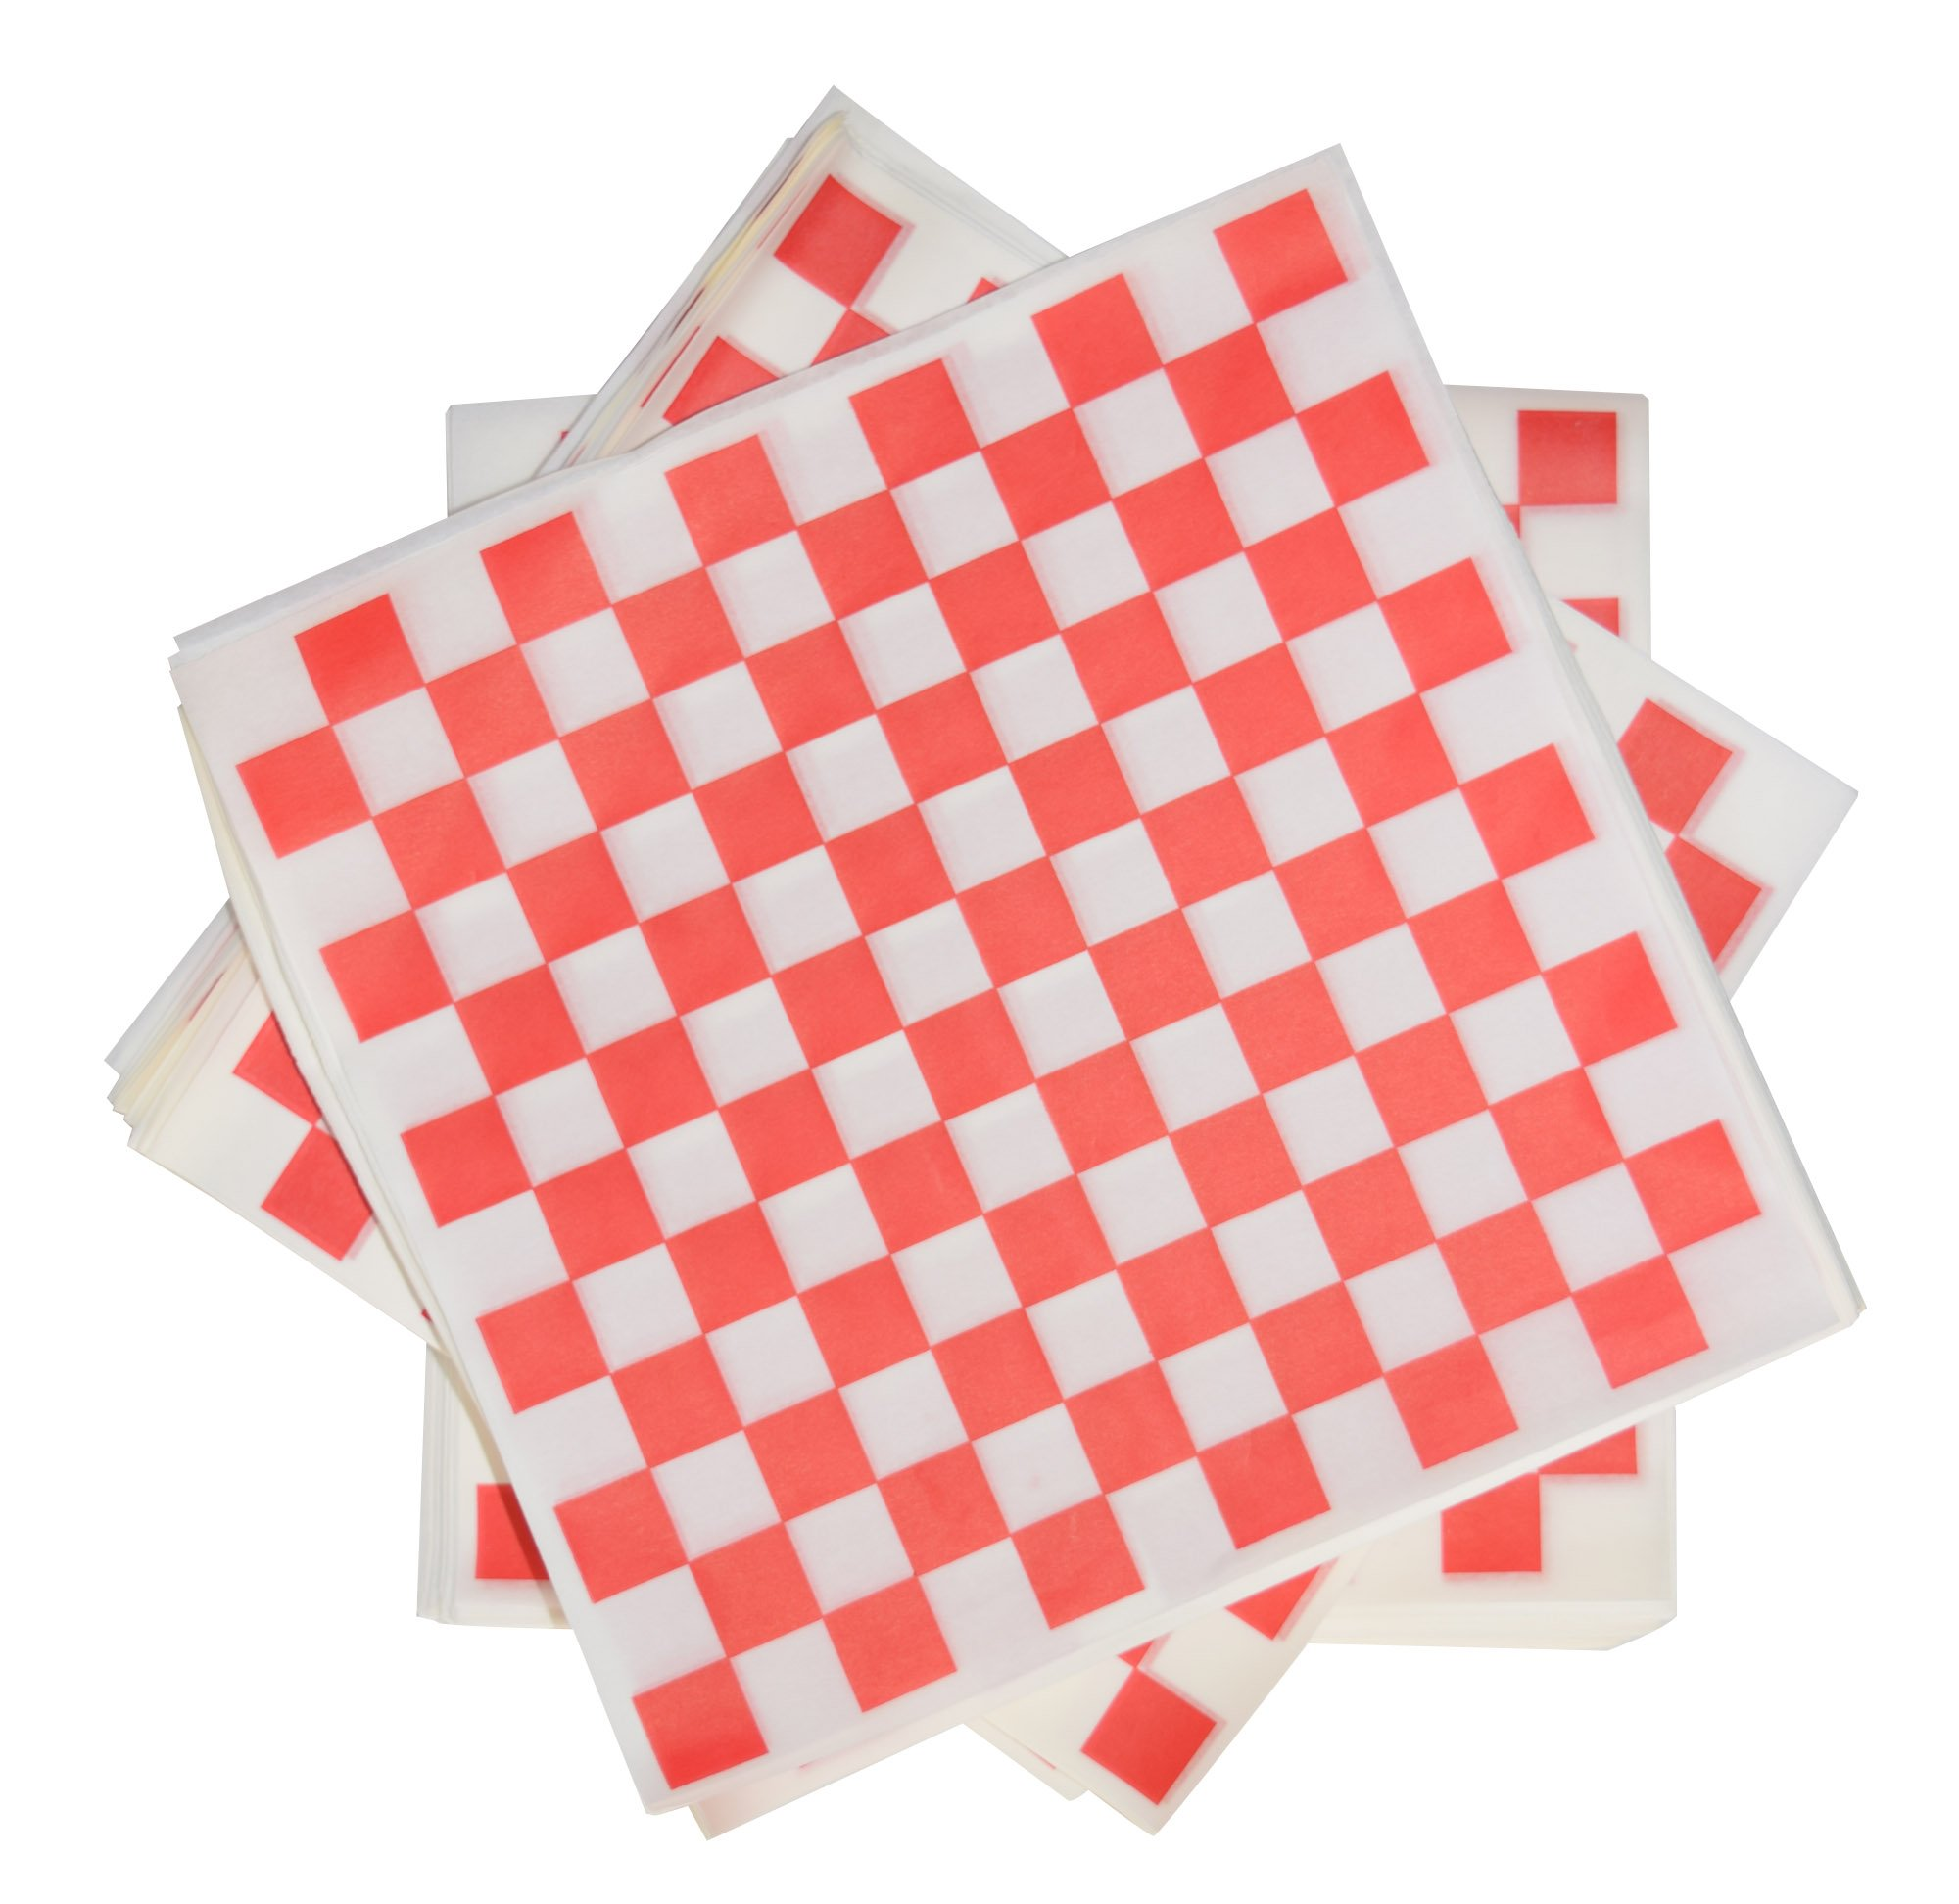 5000 Sheets of Red and White Checkered, Grease - Resistant, Basket Liners/Deli Paper